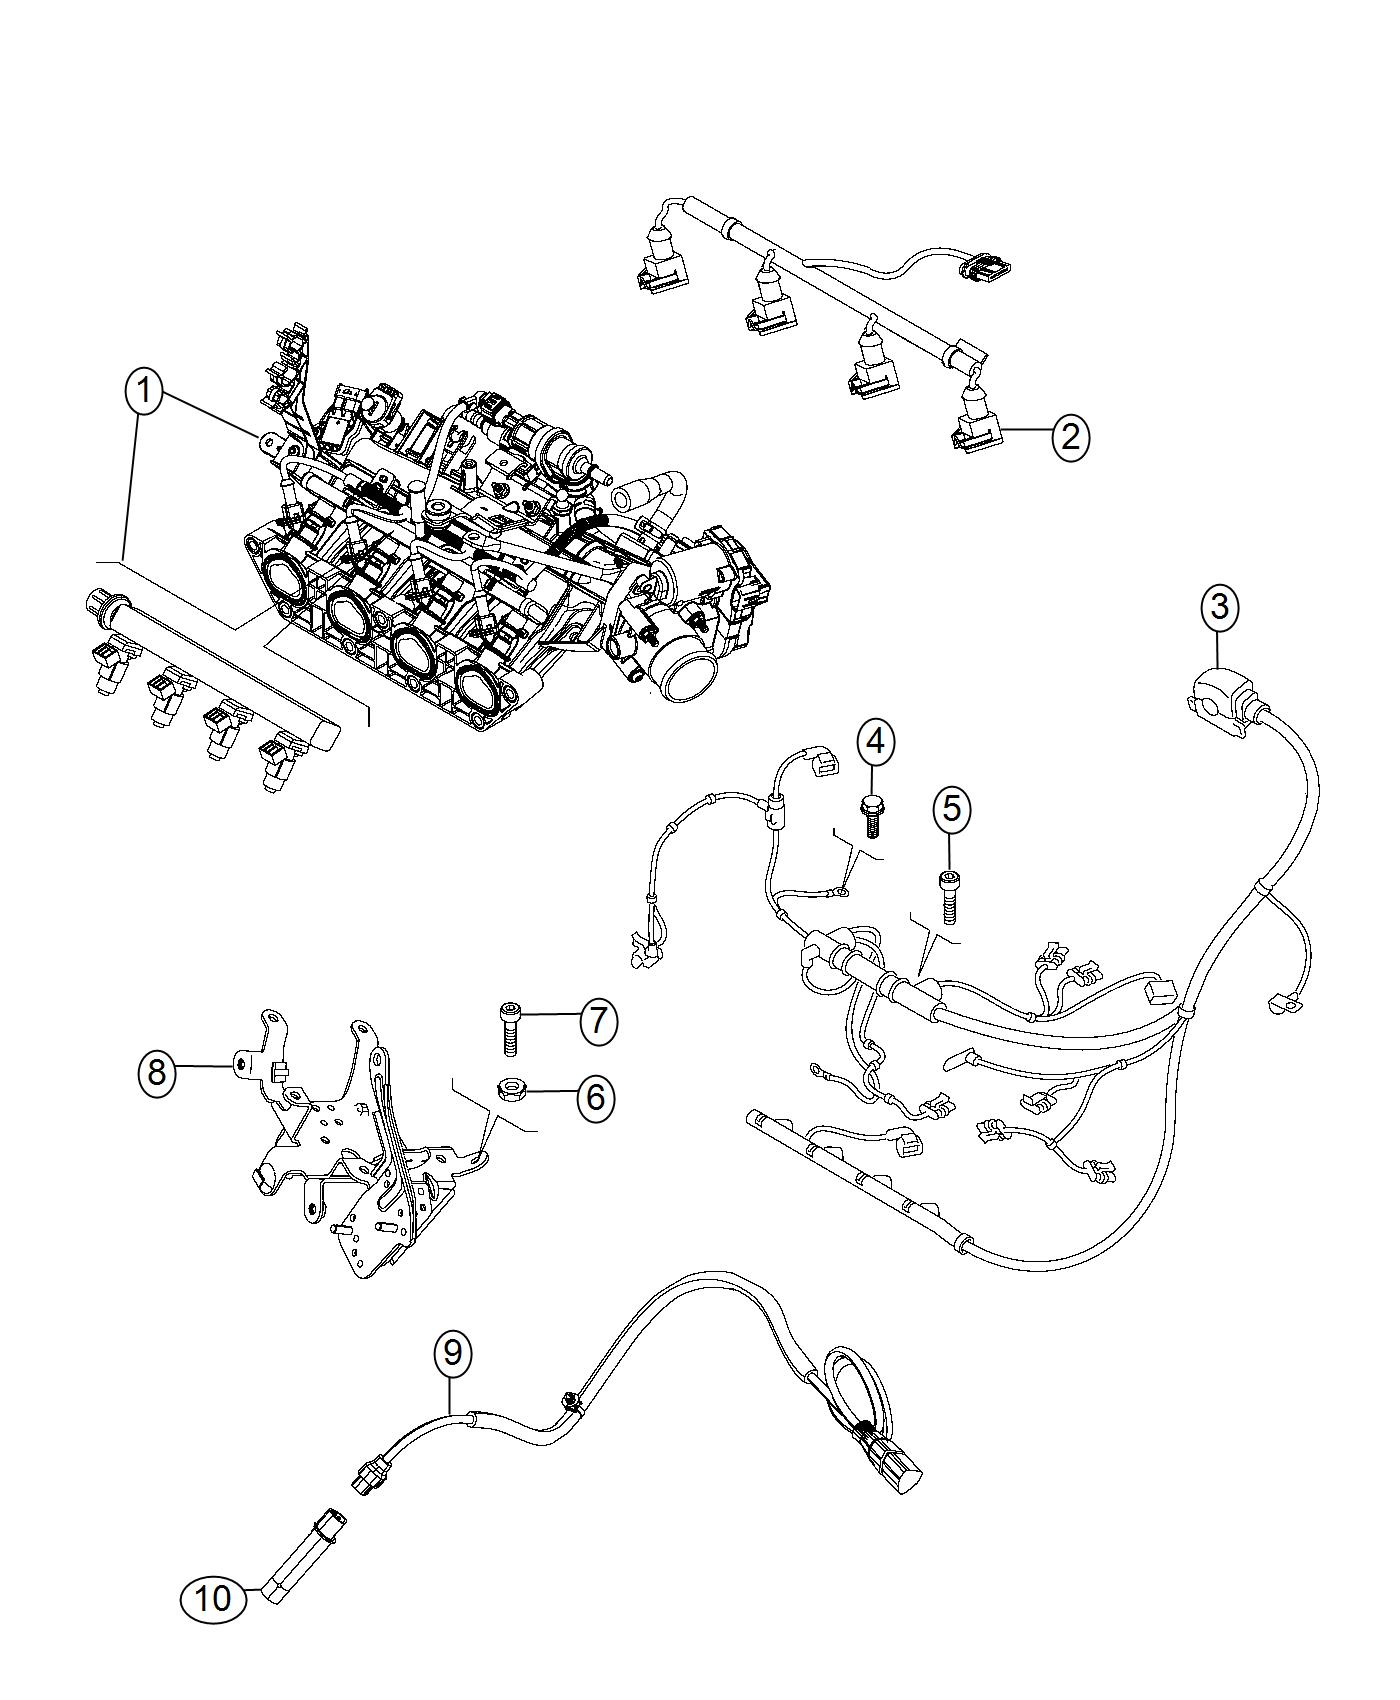 2017 Jeep Renegade Wiring. Jumper. Transmission. Export